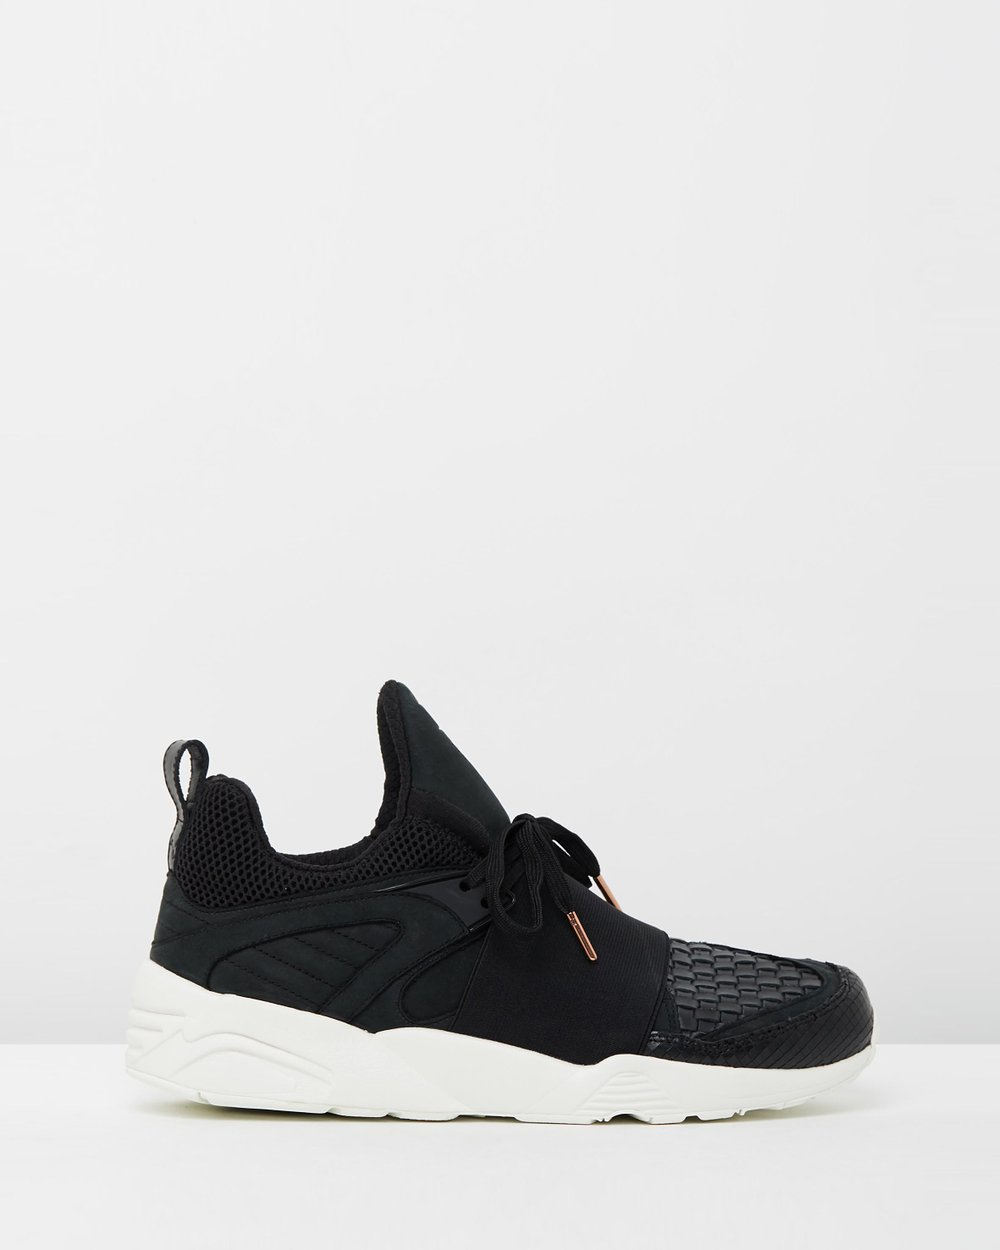 finest selection d741a f140c Nike Air Huarache Ultra Sneaker Urban Outfitters  2019 trend